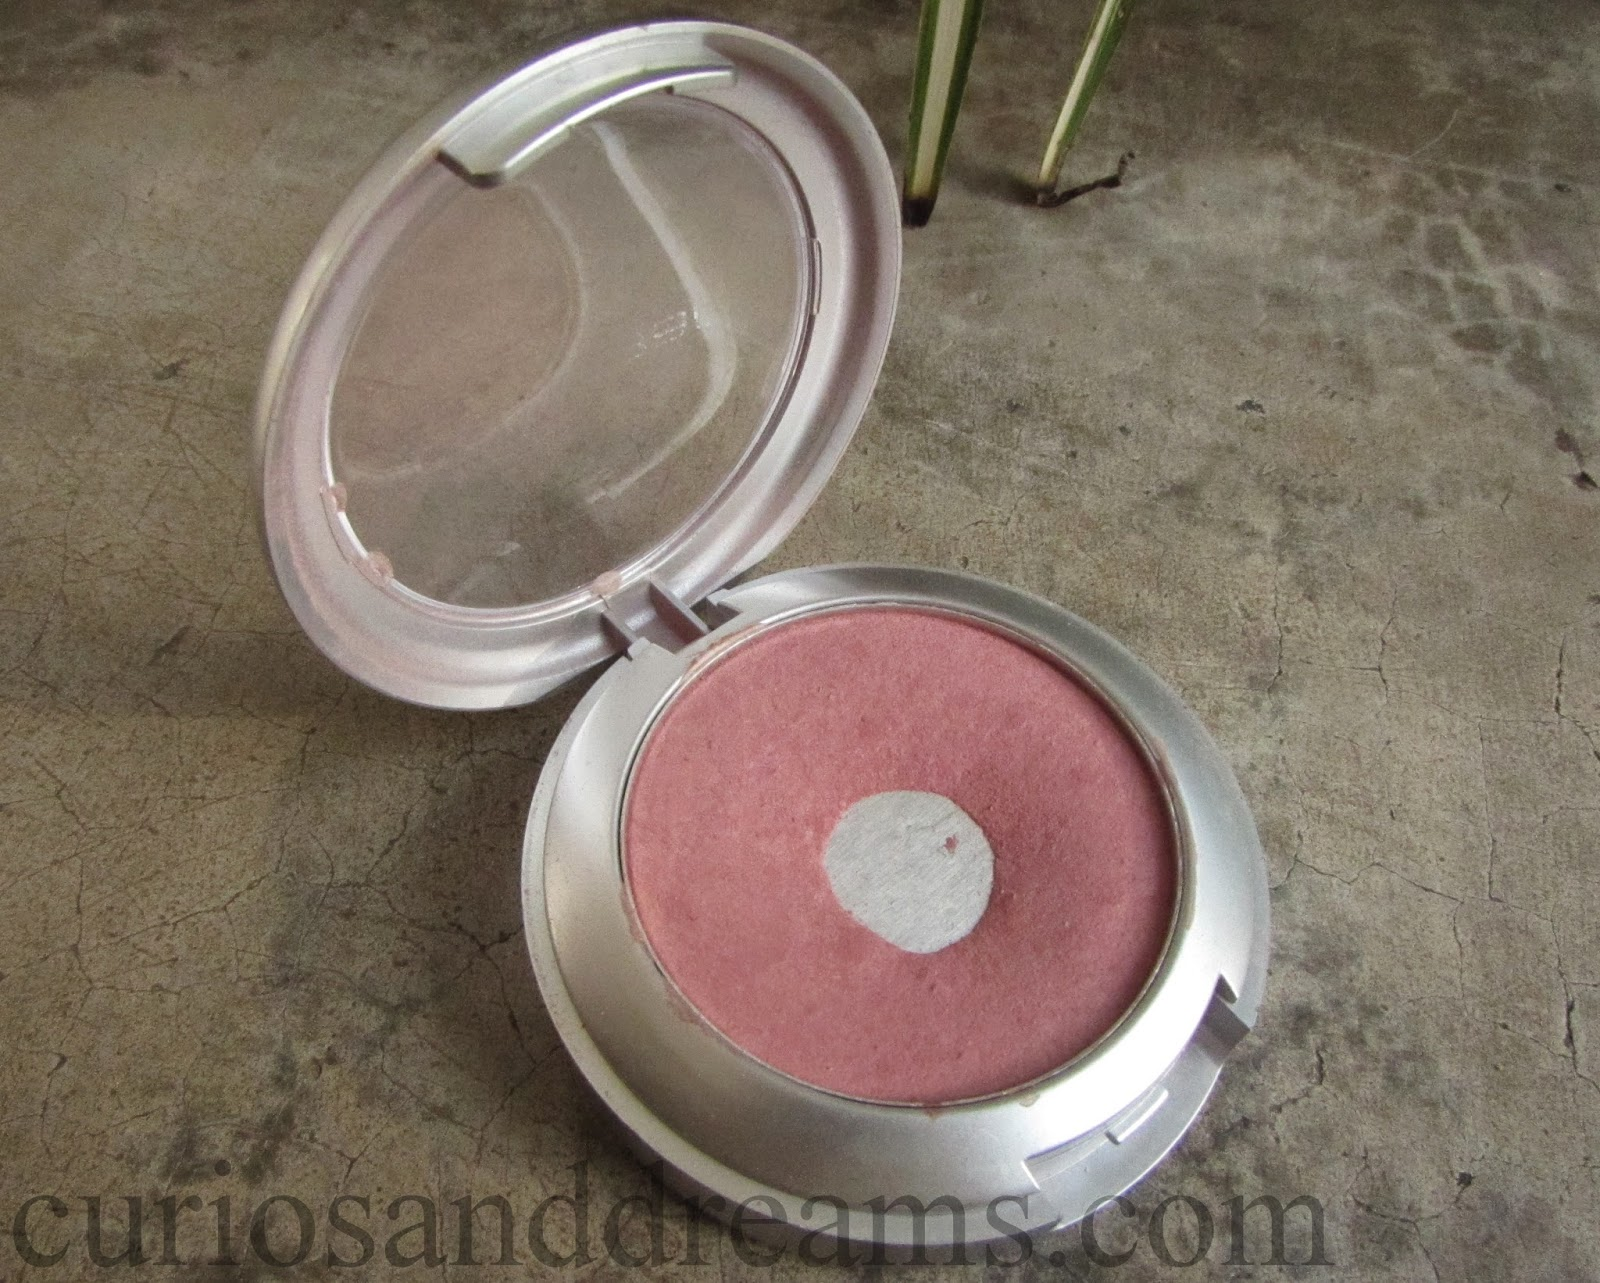 Colorbar Cosmic Rose review, Colorbar Cosmic Rose swatch